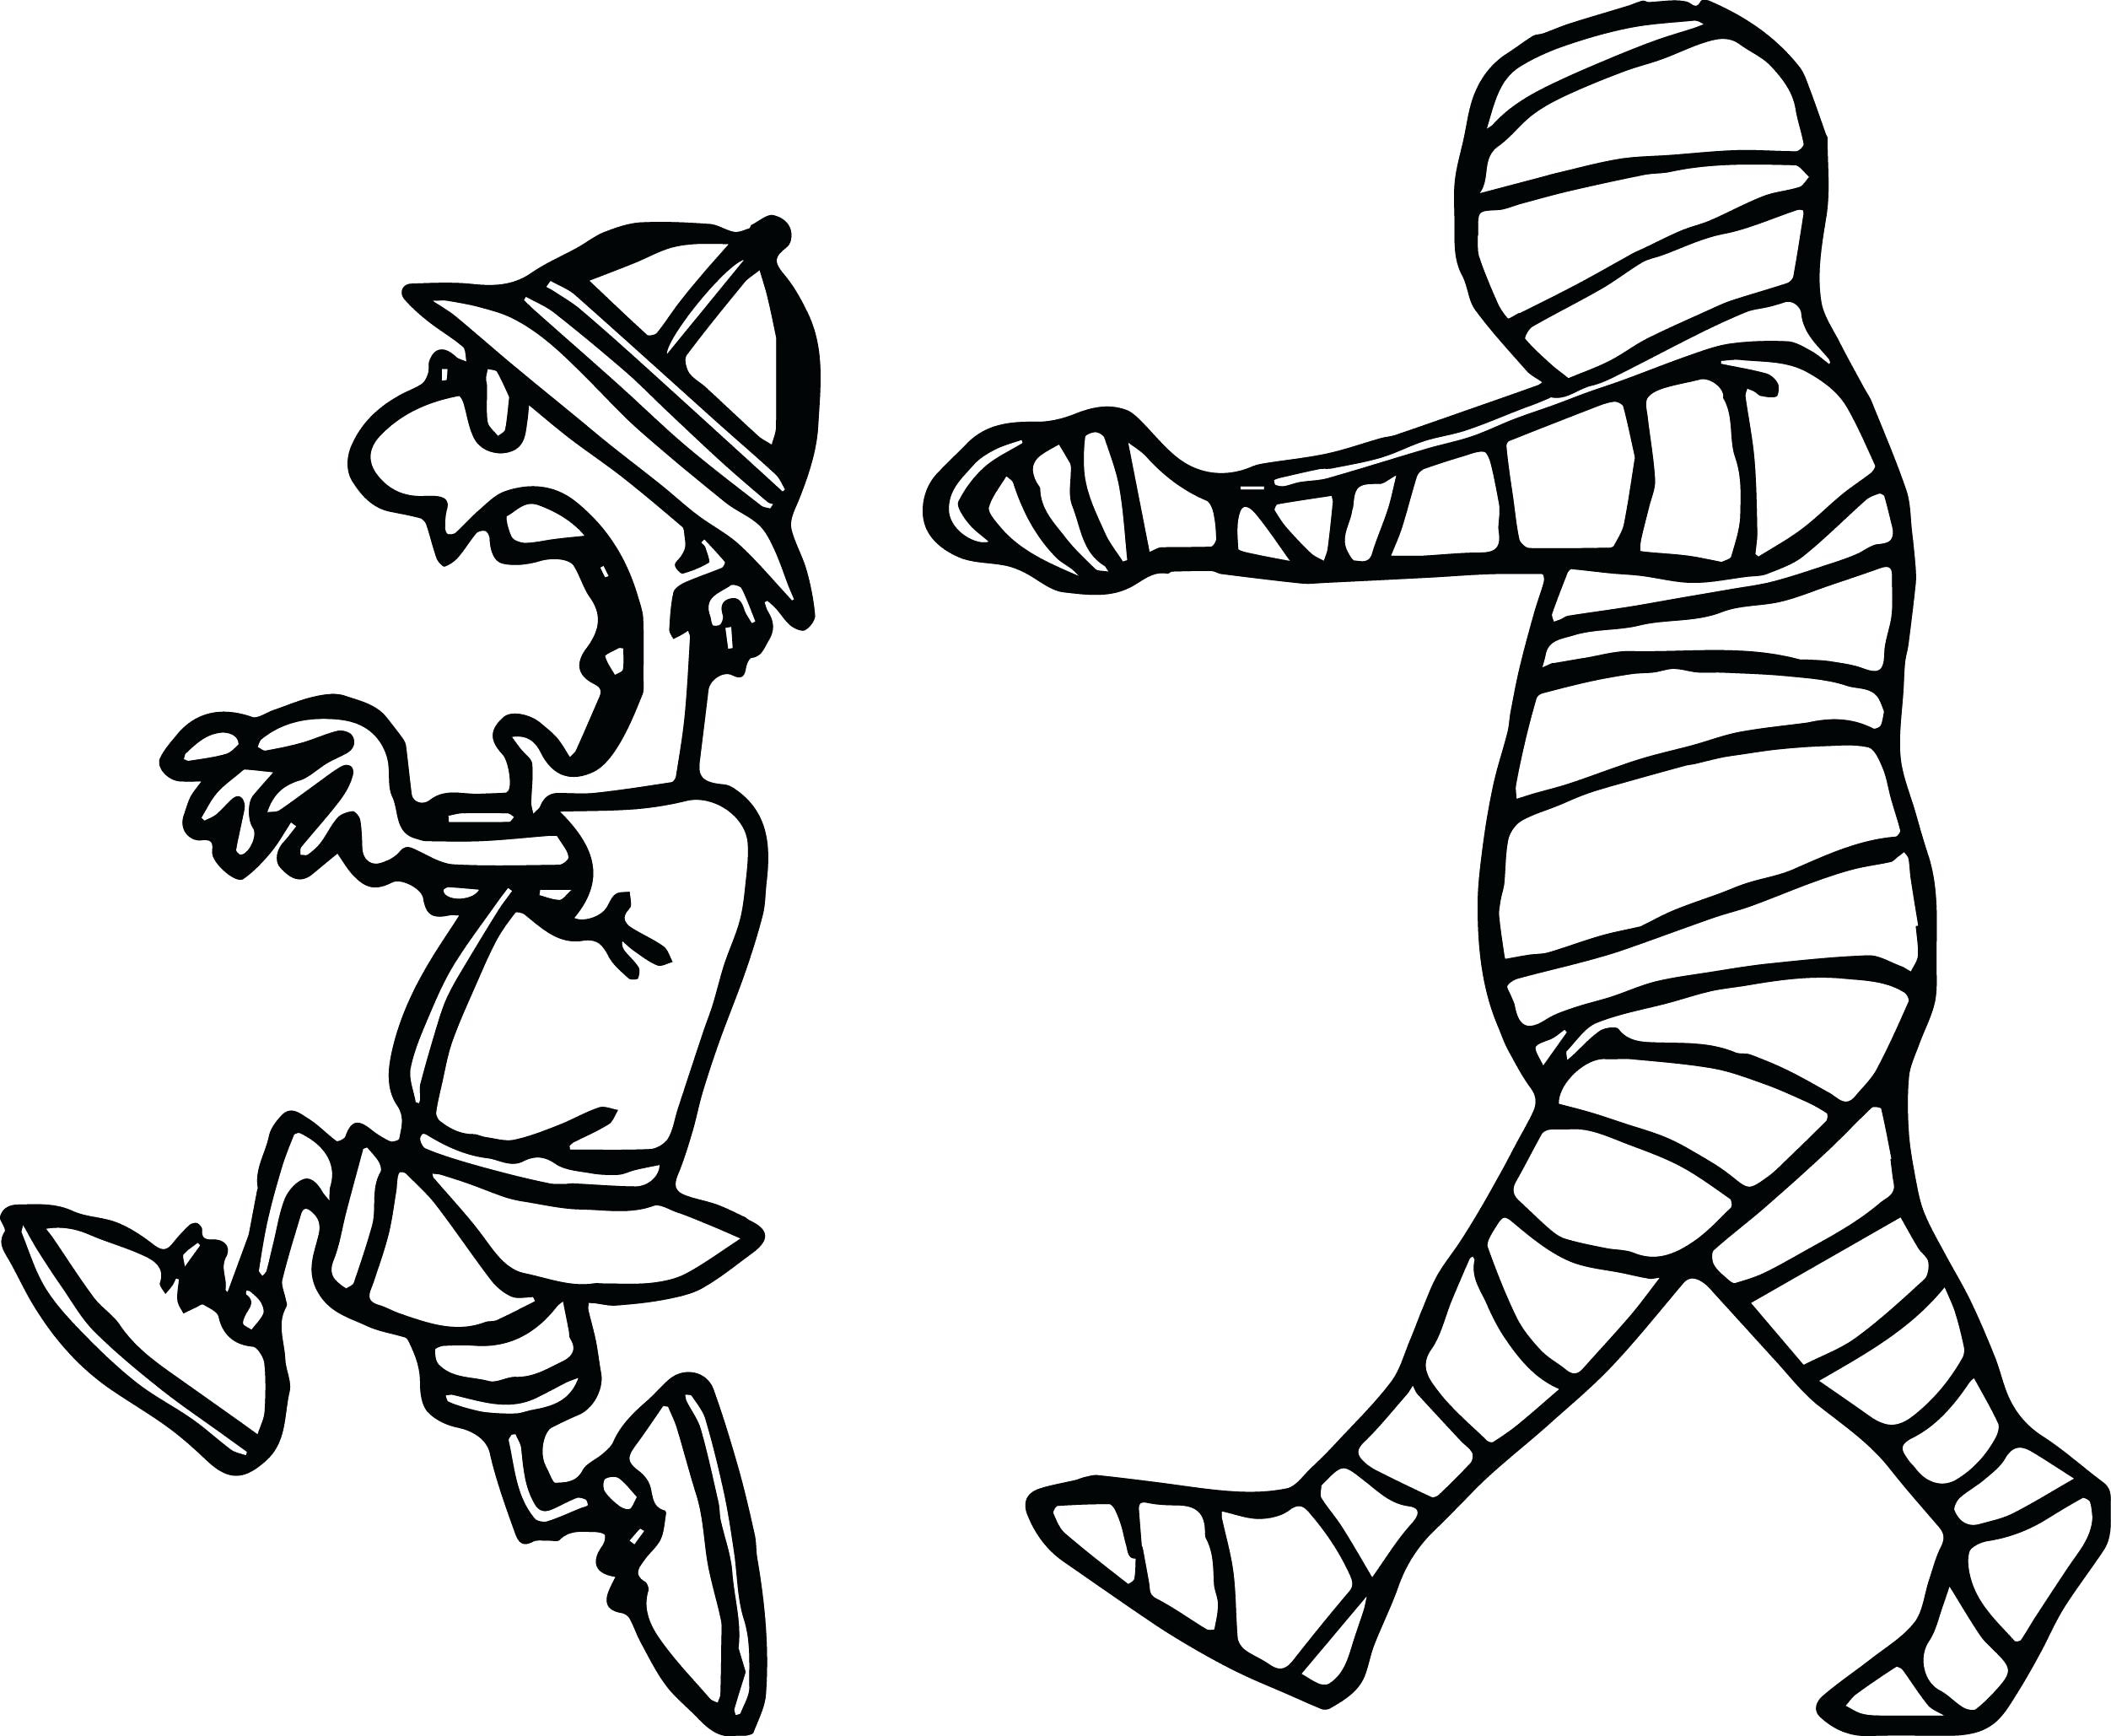 Mummy Coloring Pages Printable 6s - Free For kids